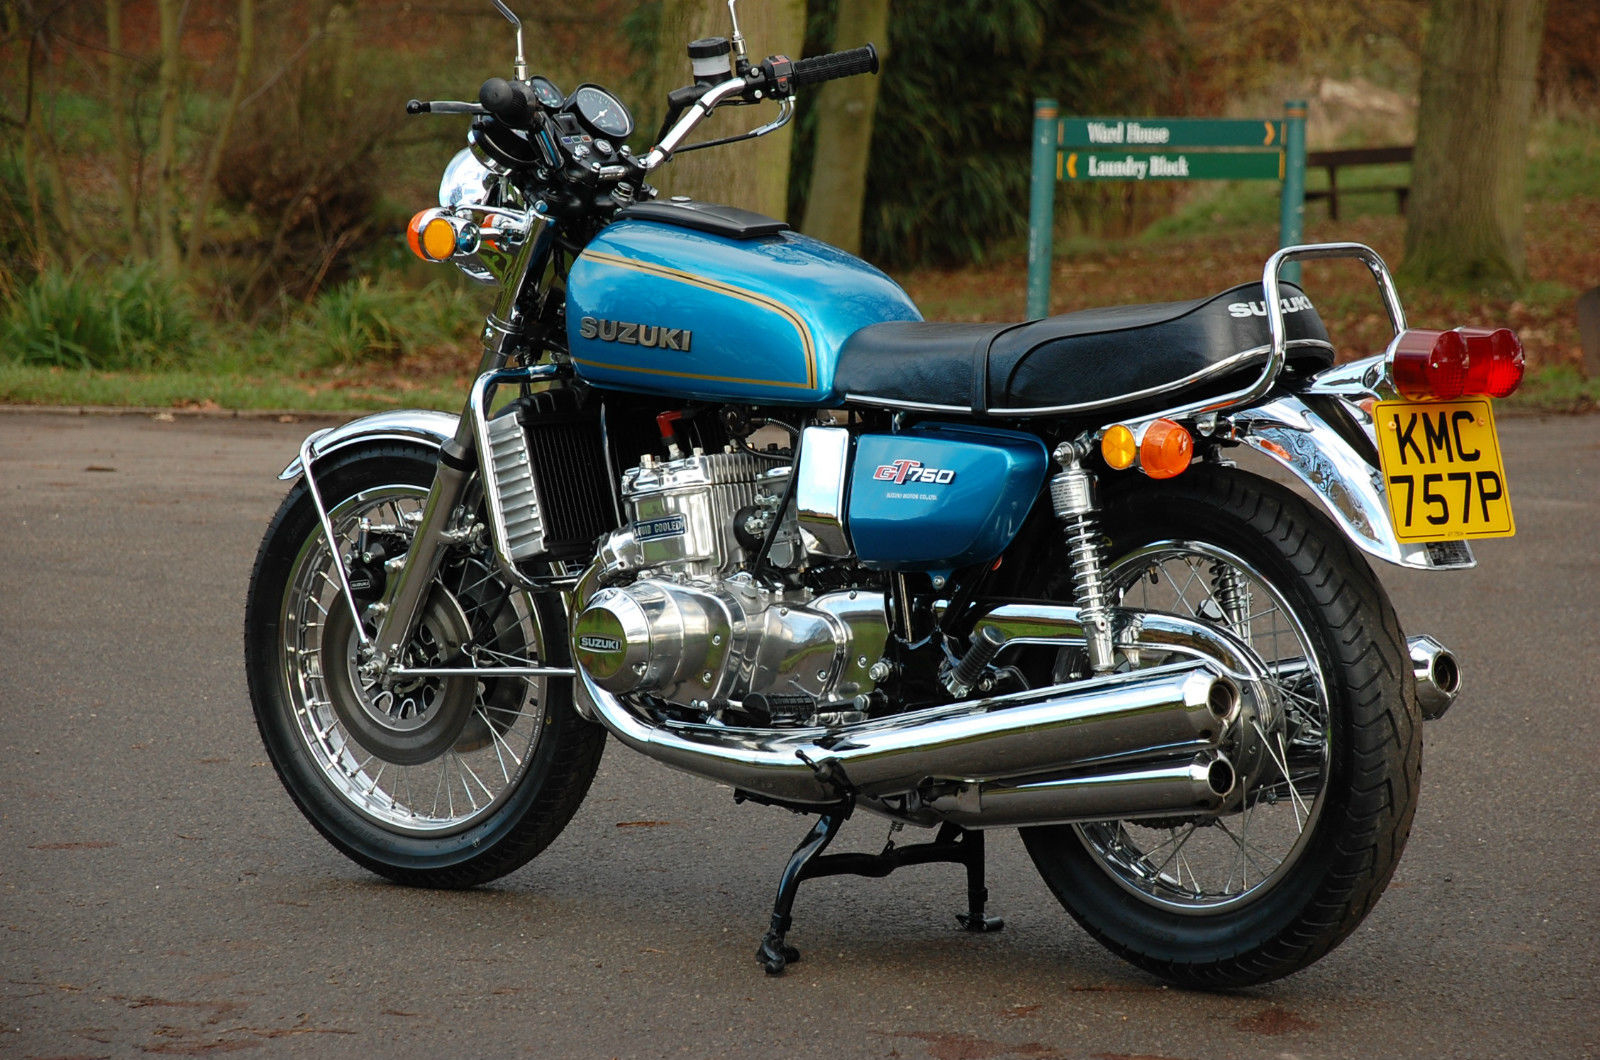 Suzuki GT750 - 1975 - Kettle, Water Buffalo, Fuel Tank, Seat, Engine and Exhausts.